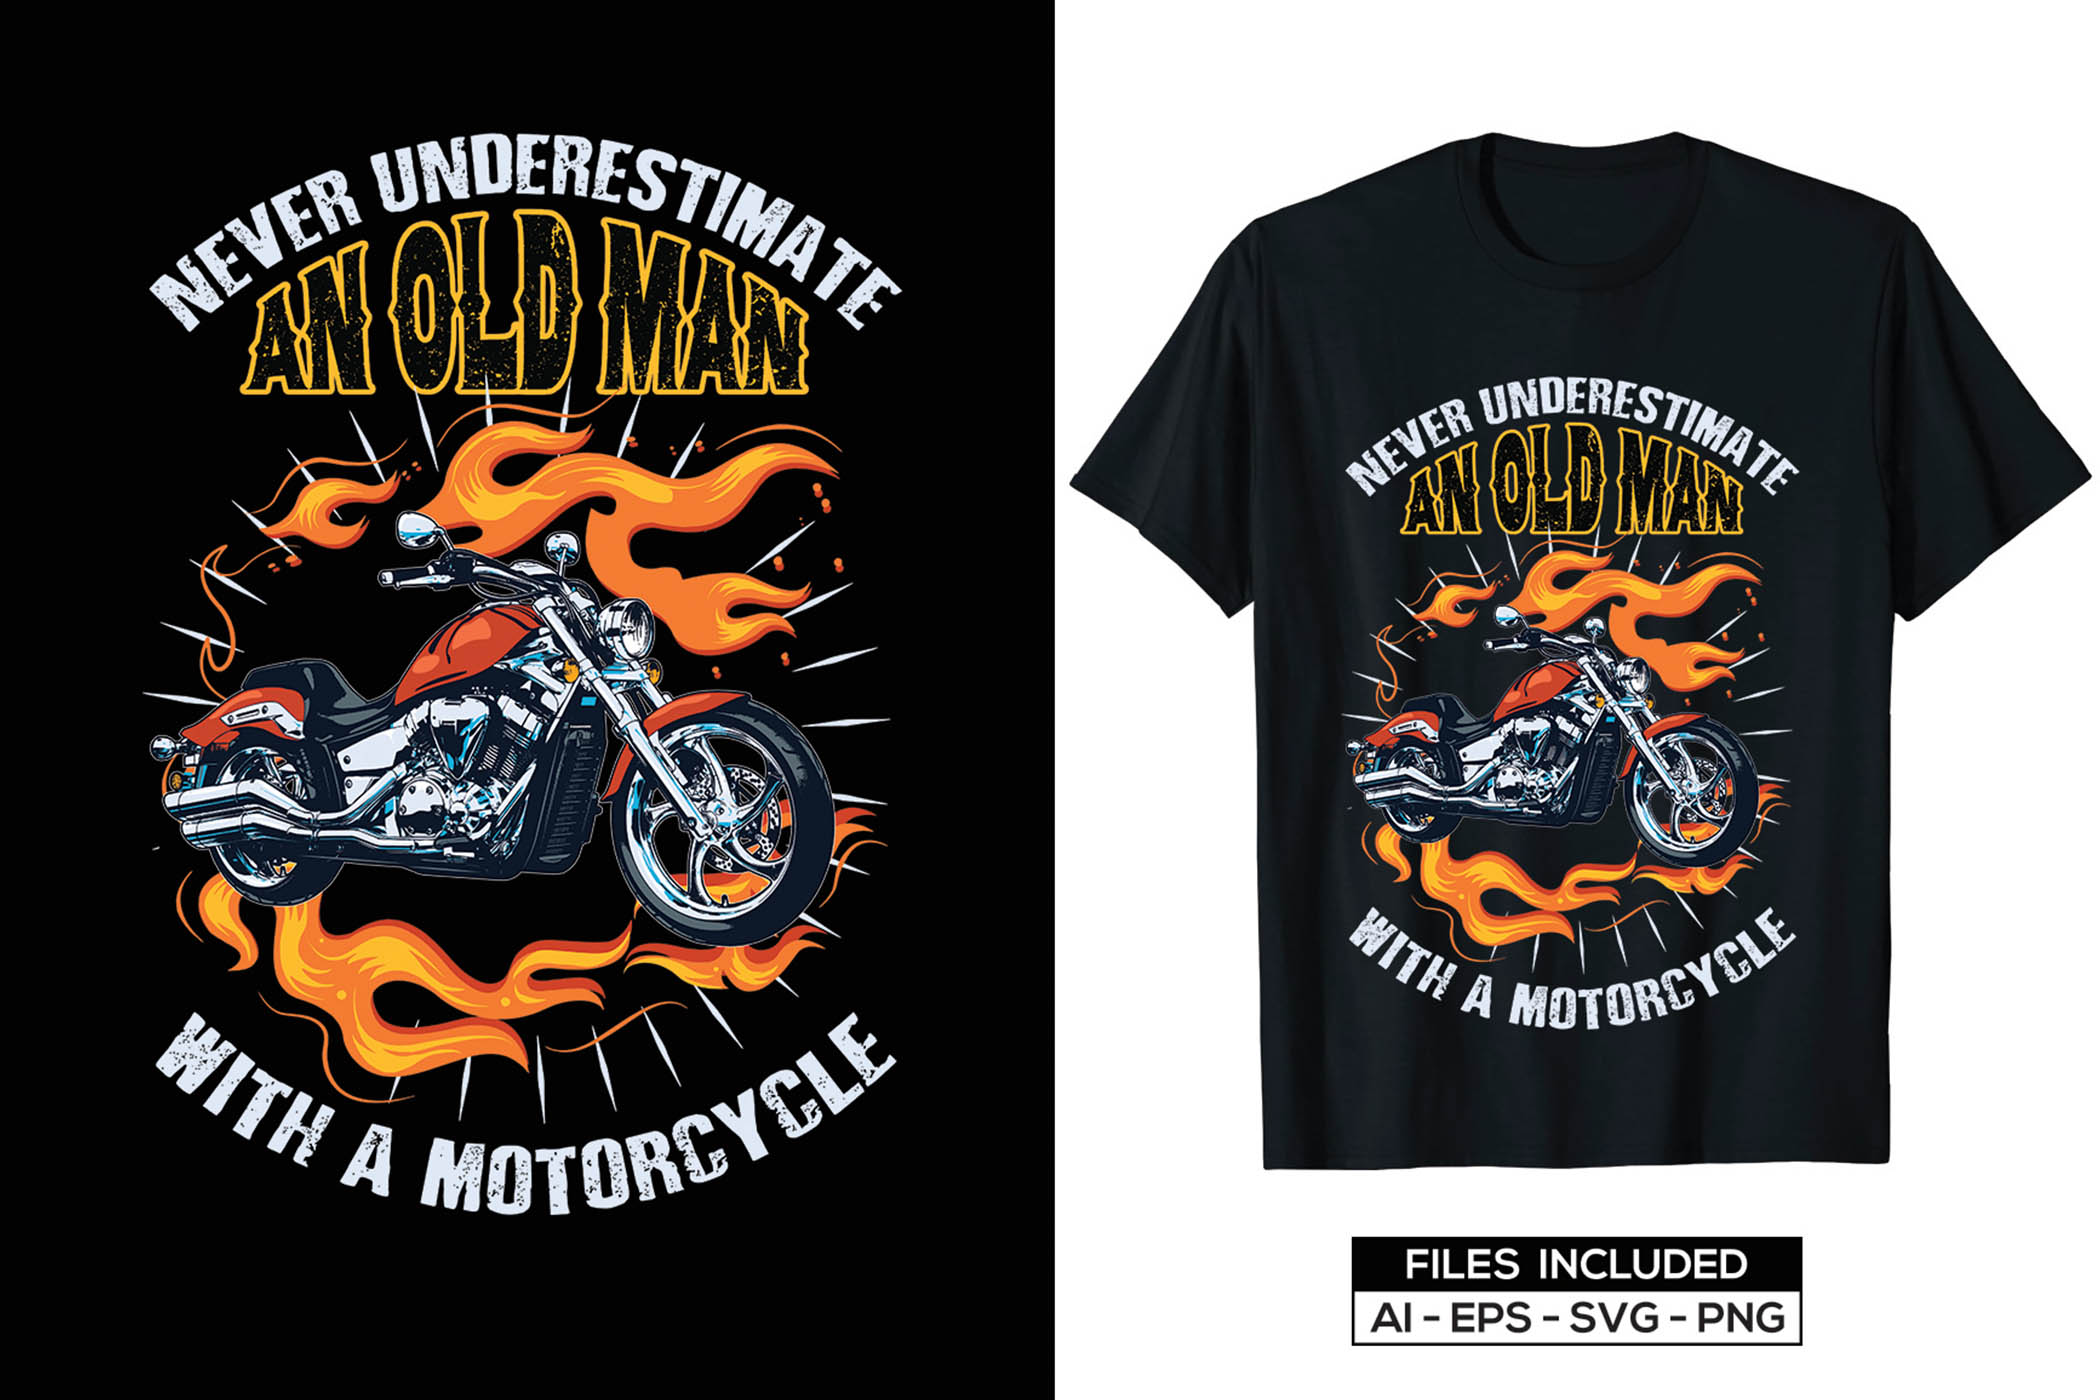 The motorcycle is on fire. It looks impressive and memorable.